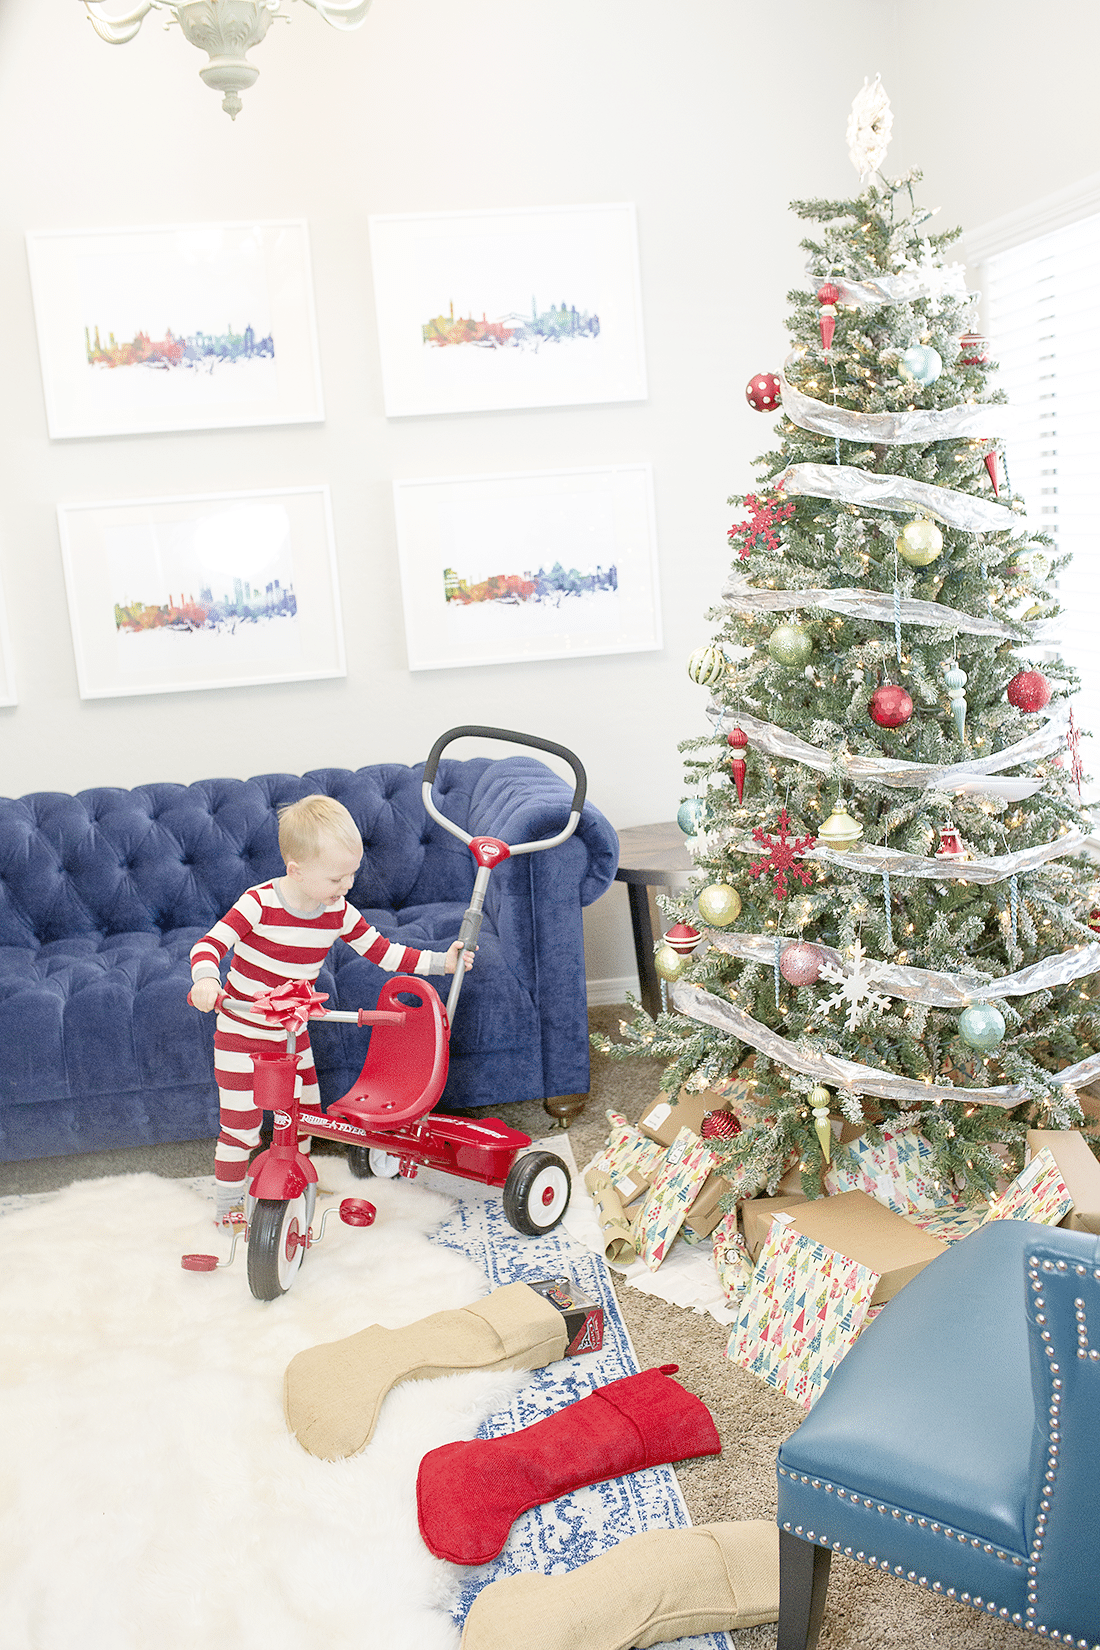 Best Gifts for 2- Year Olds